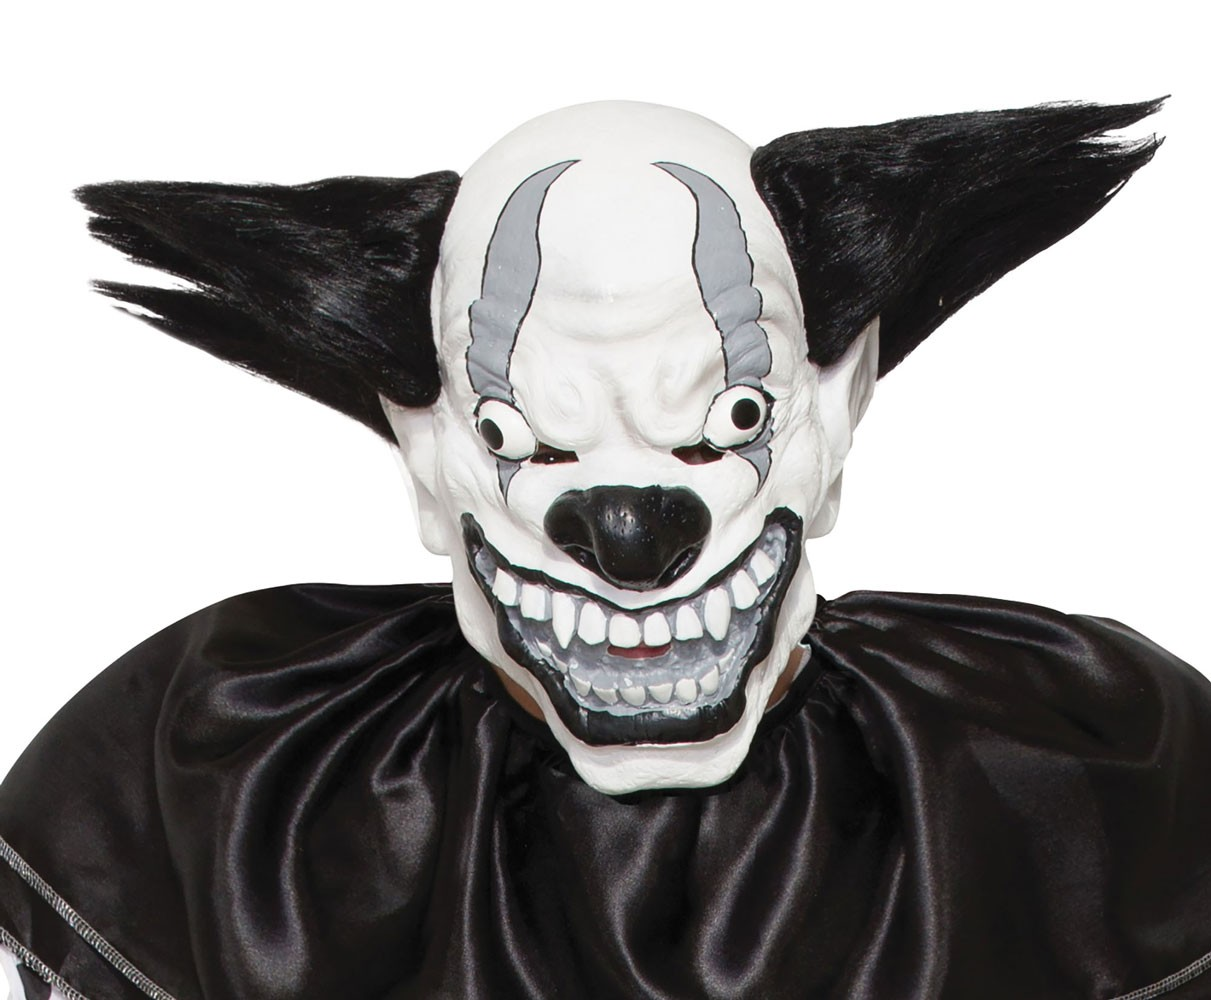 Teufels Clown Horror Maske